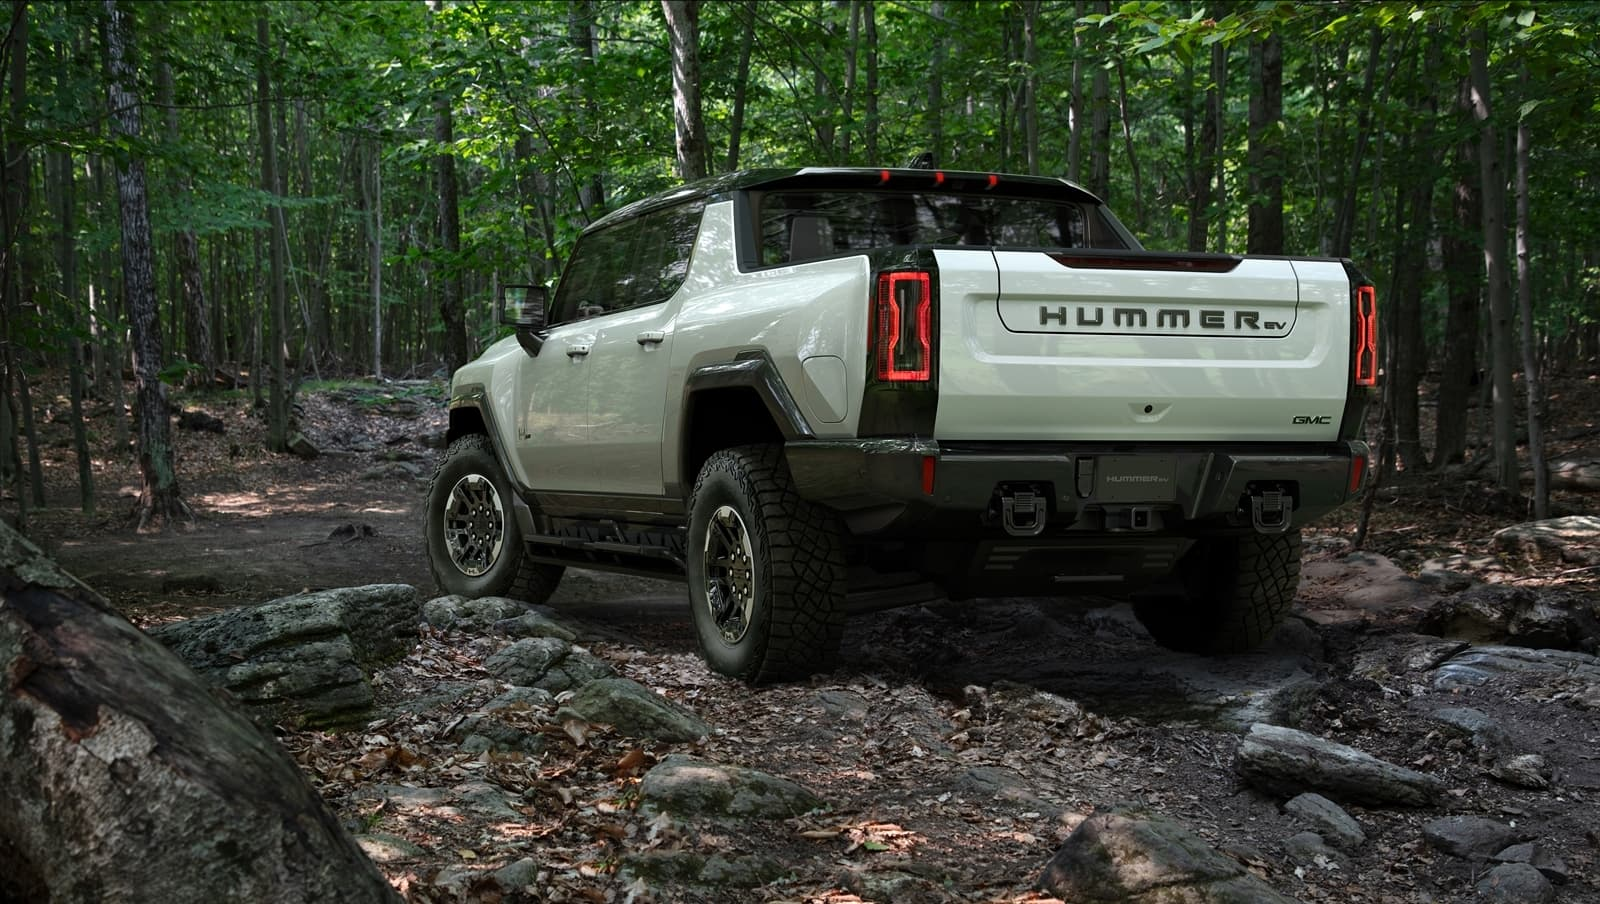 The Gmc Hummer Ev Is Designed To Be An Off Road Beast, With All